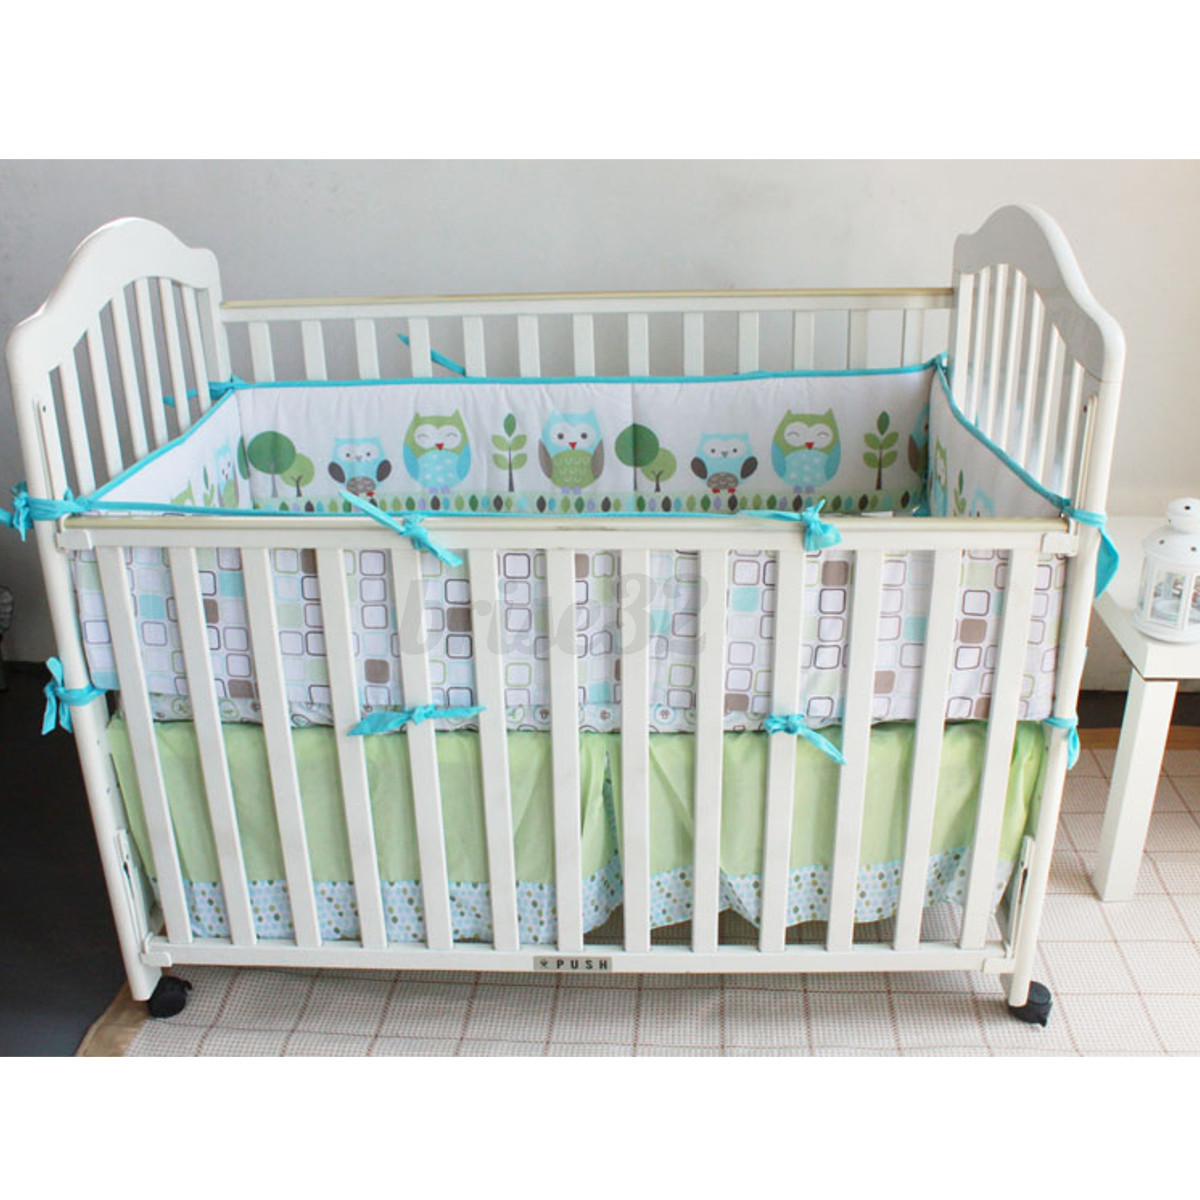 4Pcs Set Baby Infant Cot Crib Bumper Safety Protector